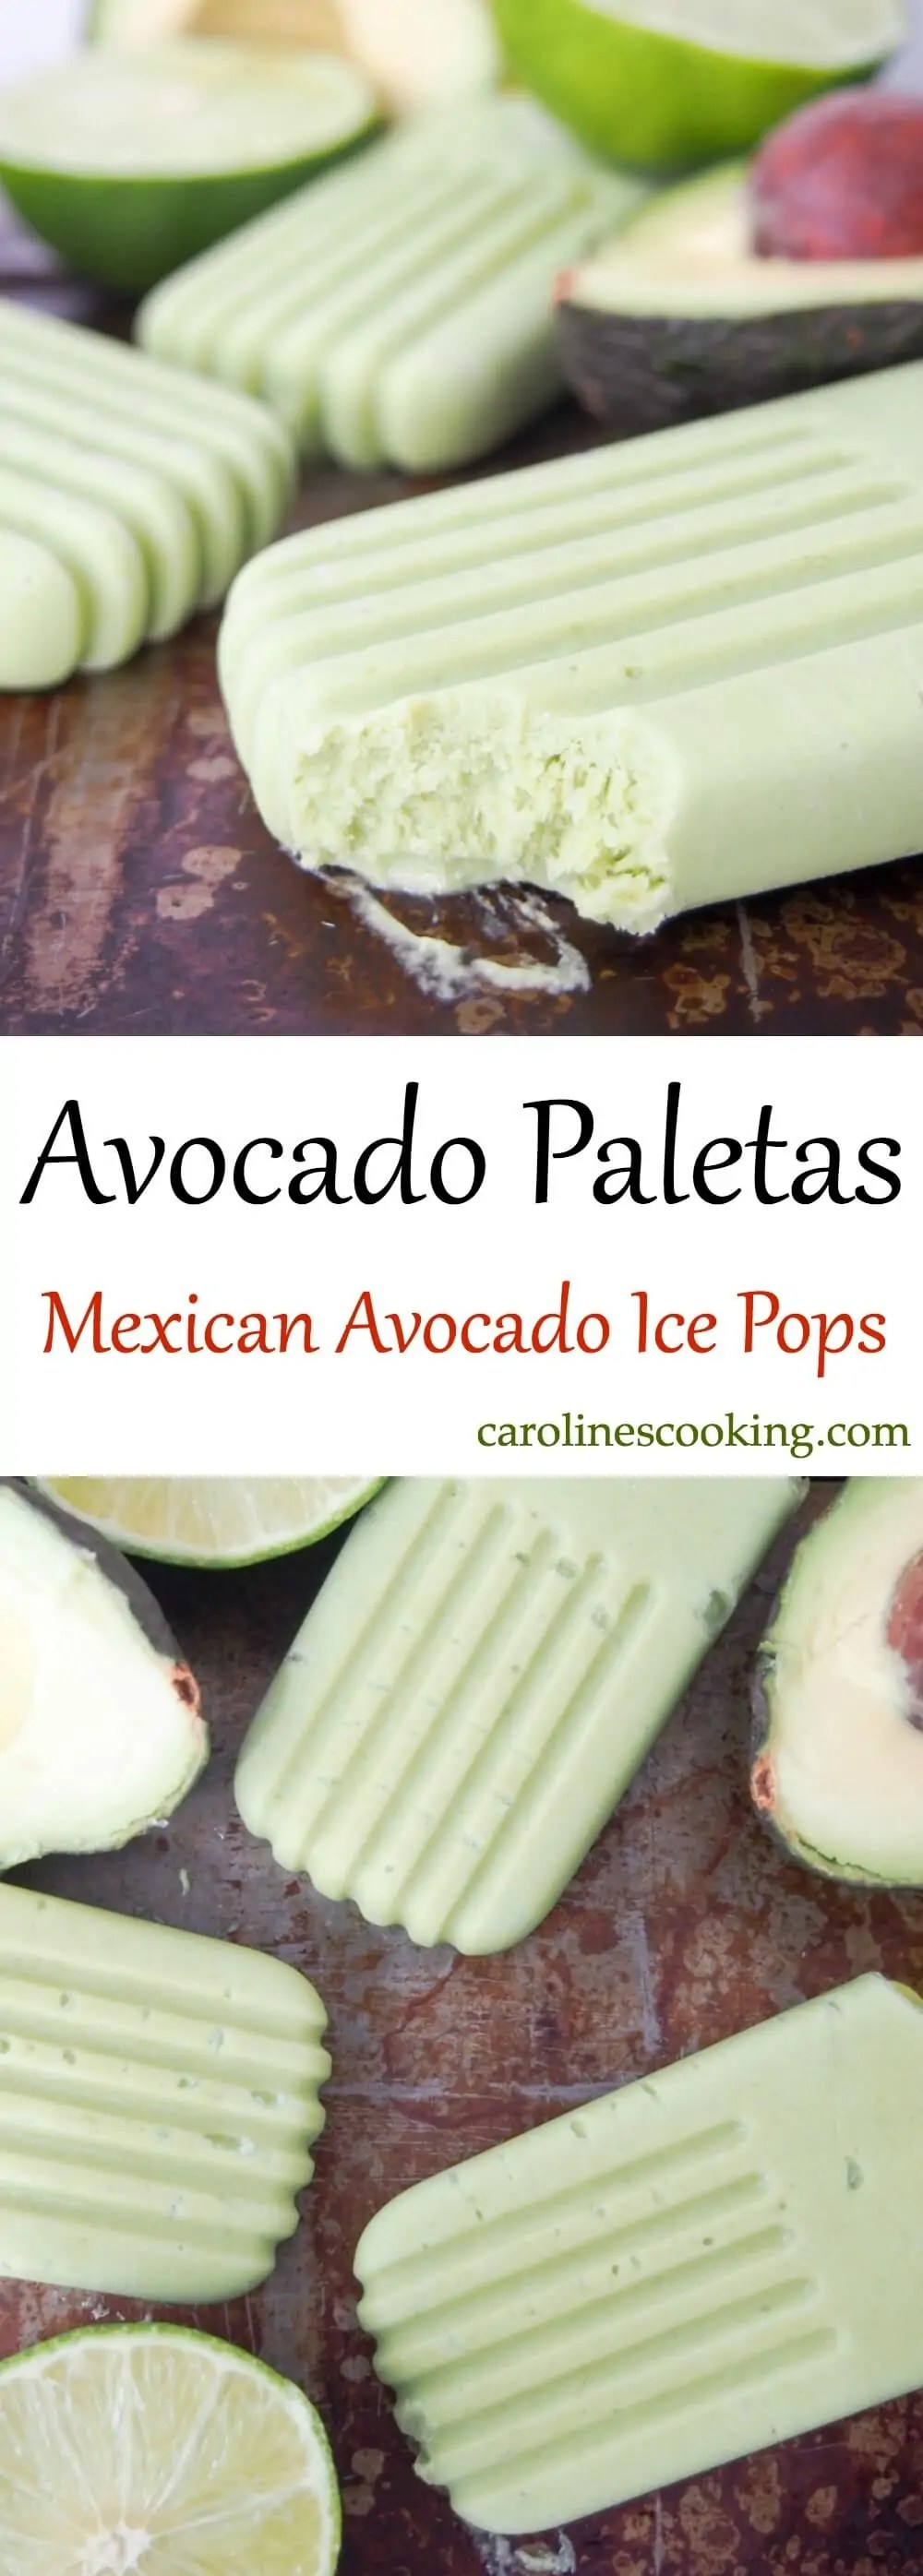 Avocado paletas (Mexican avocado ice pops) are easy to make, healthy & so creamy and tasty. Dairy free & refined sugar free, they're a frozen treat to enjoy guilt-free!